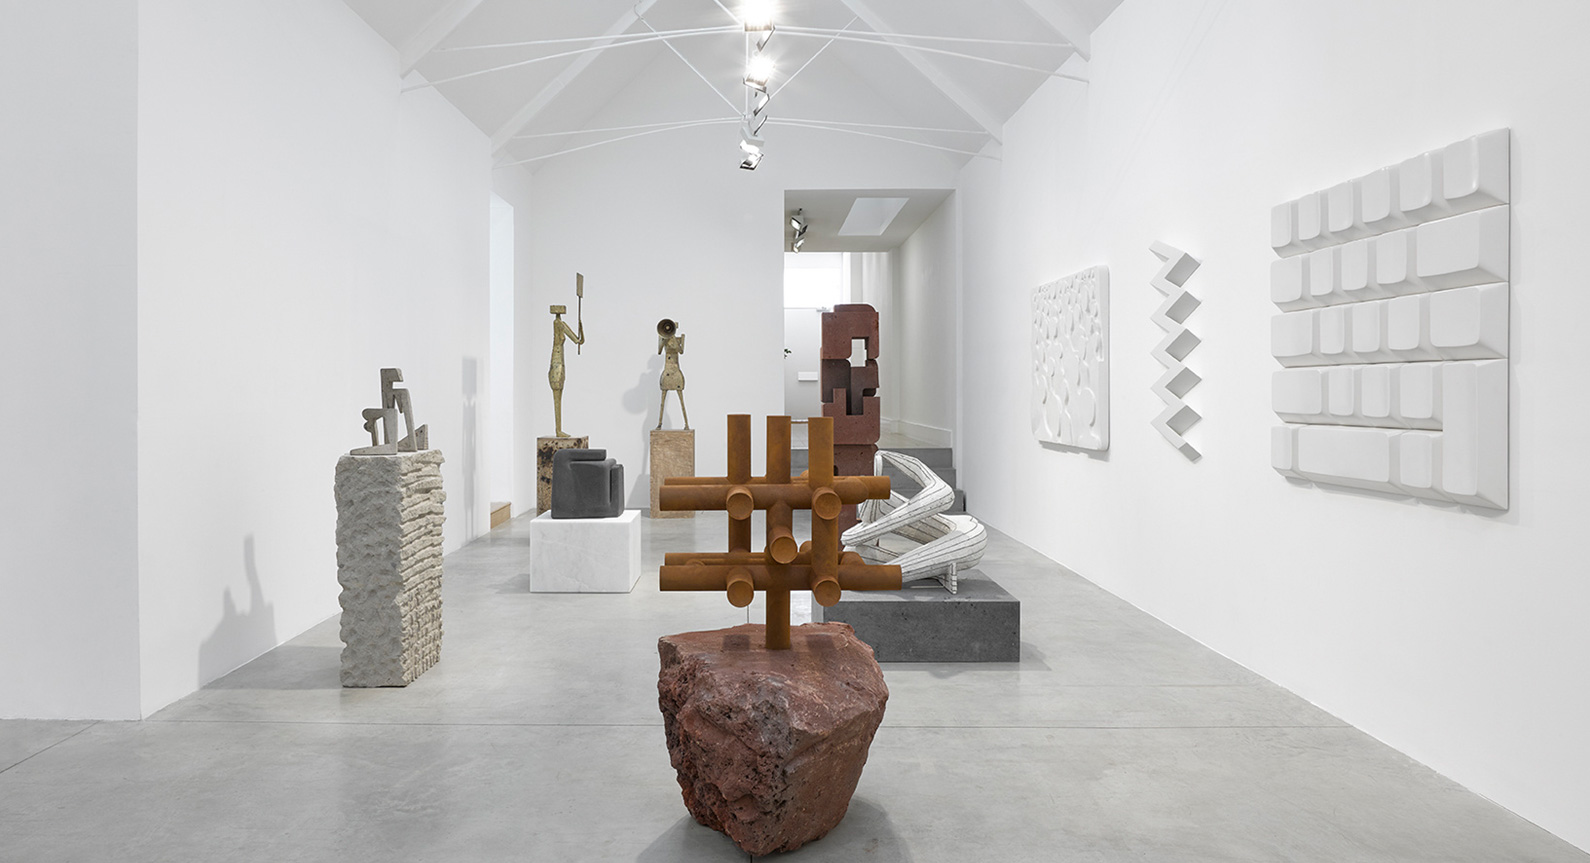 Pedro Reyes Celebrates Political Protest With Sculpture At The Lisson Gallery London